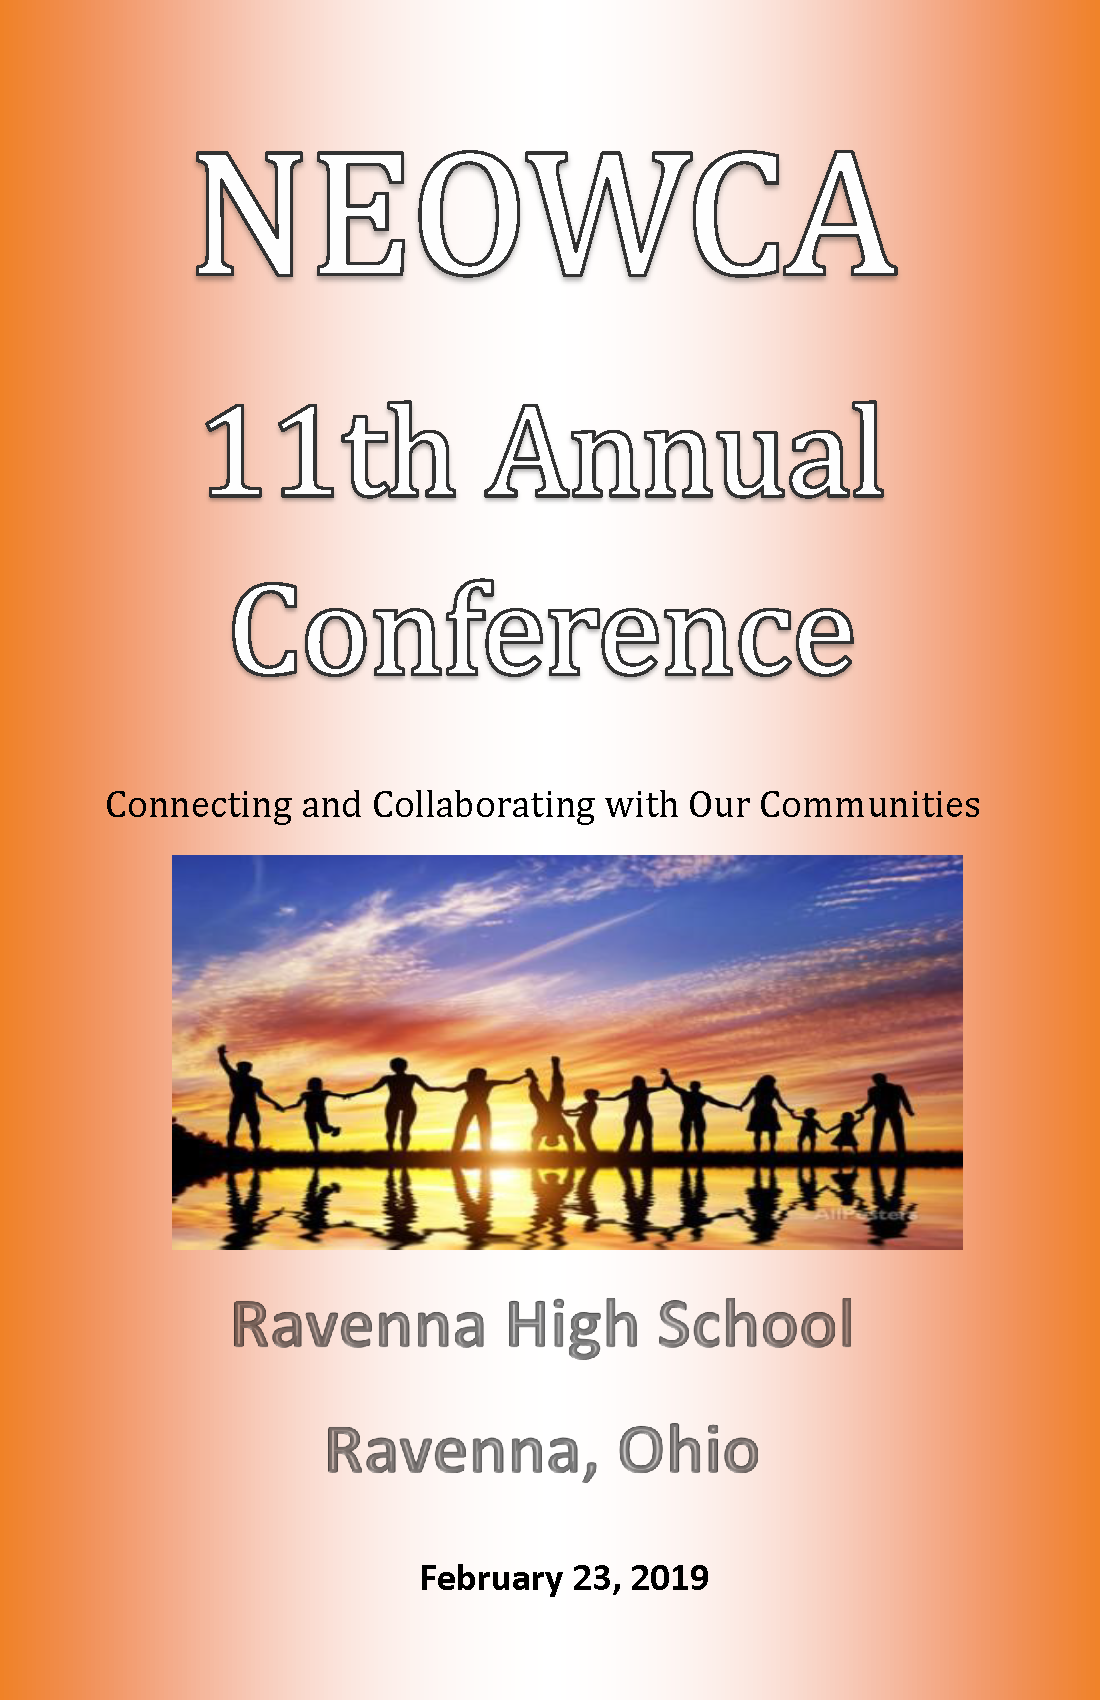 NEOWCA 11th Annal Conference